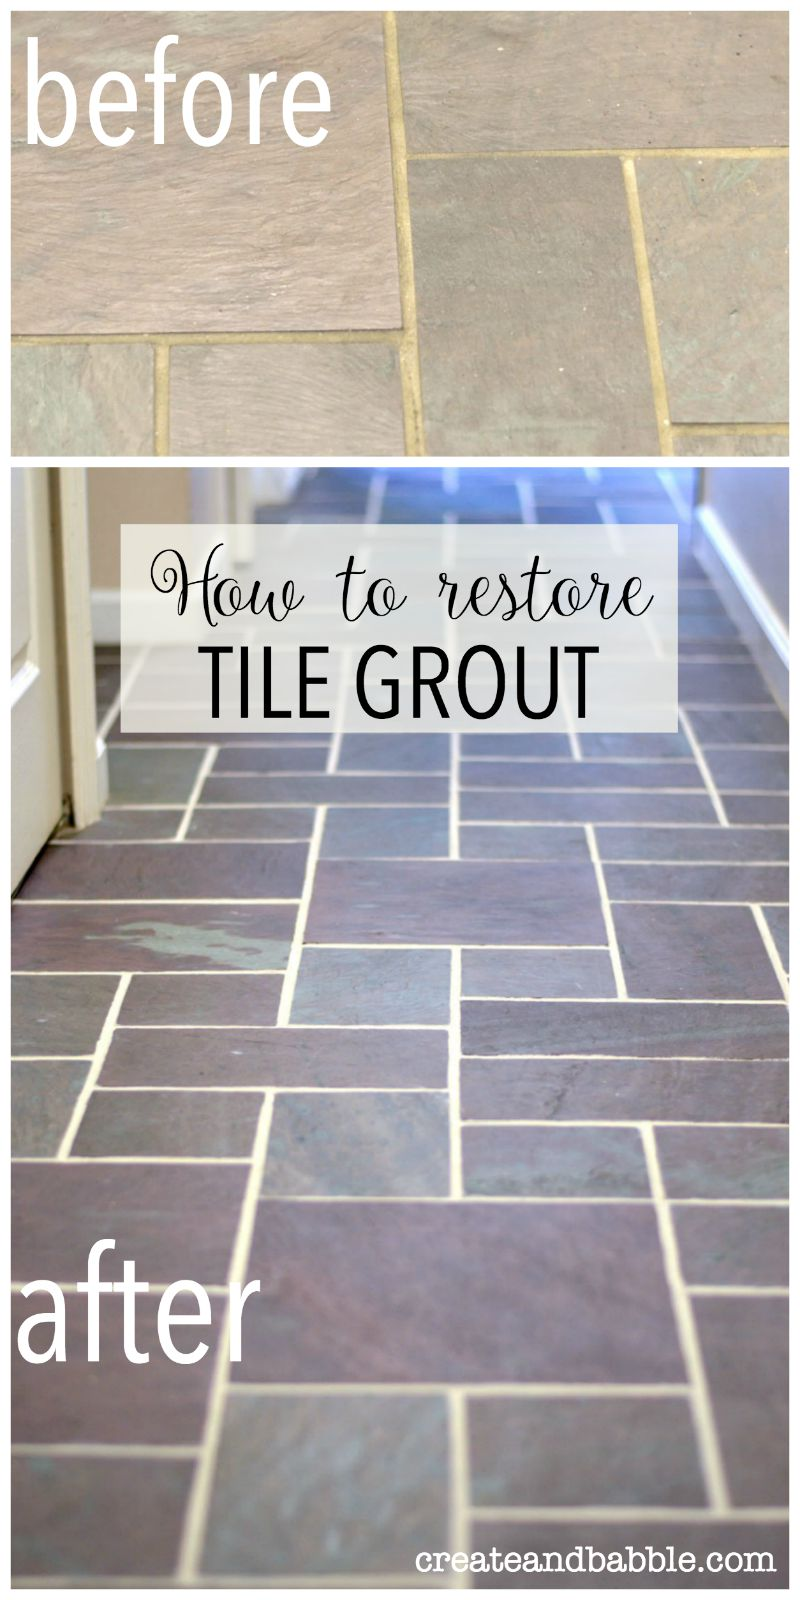 How I got my grout to look like new for $11